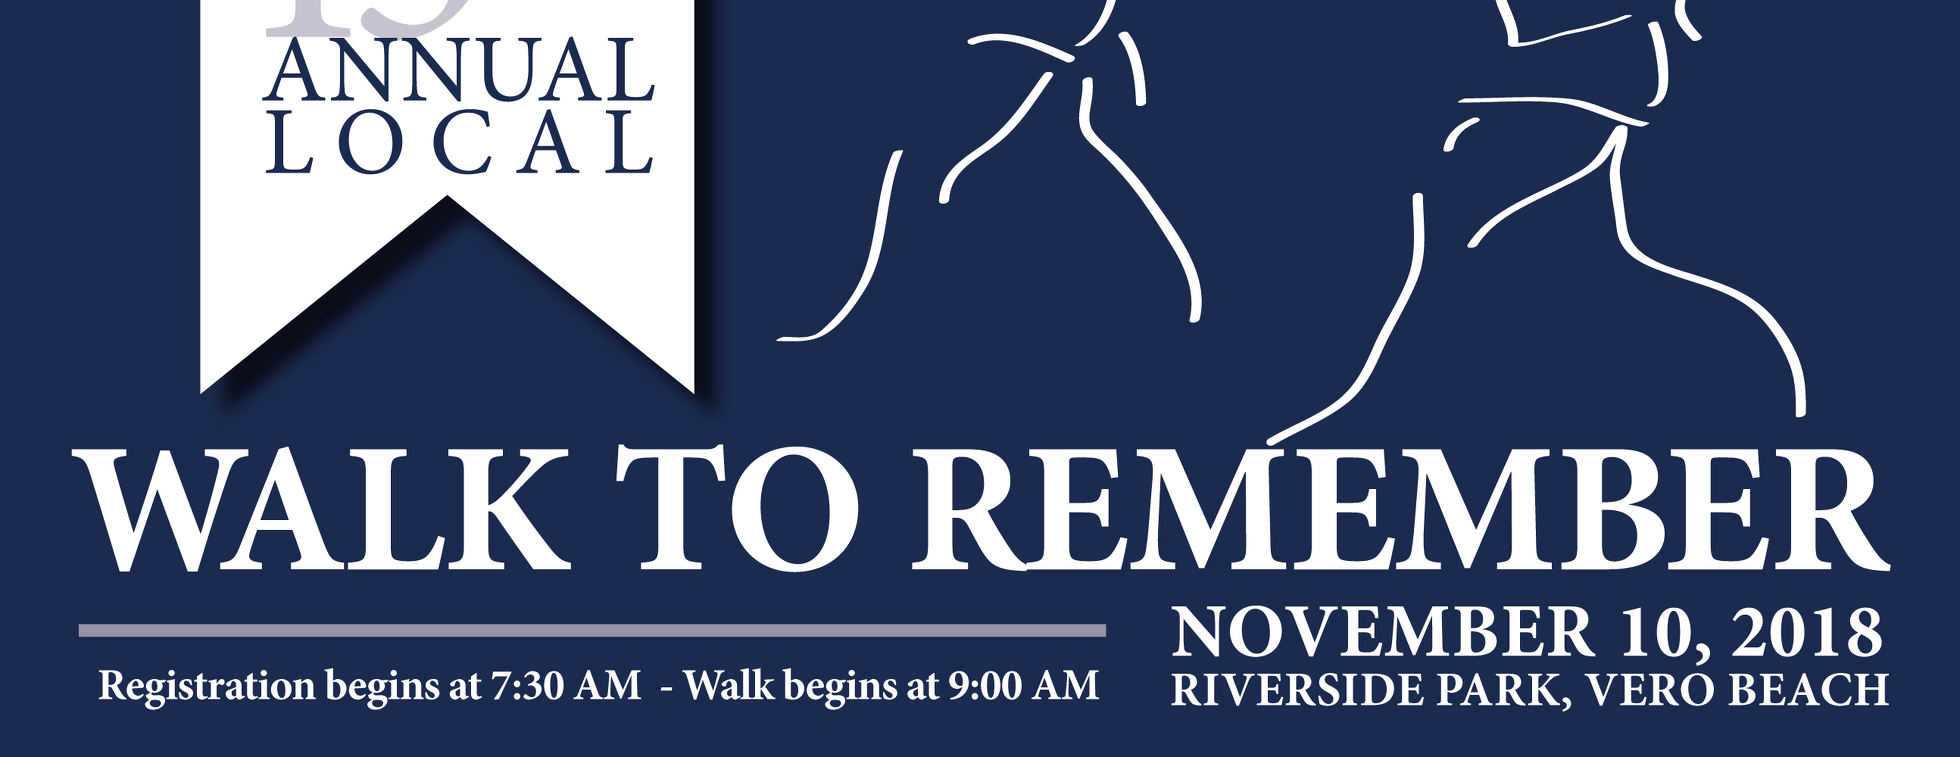 2018 WALK TO REMEMBER